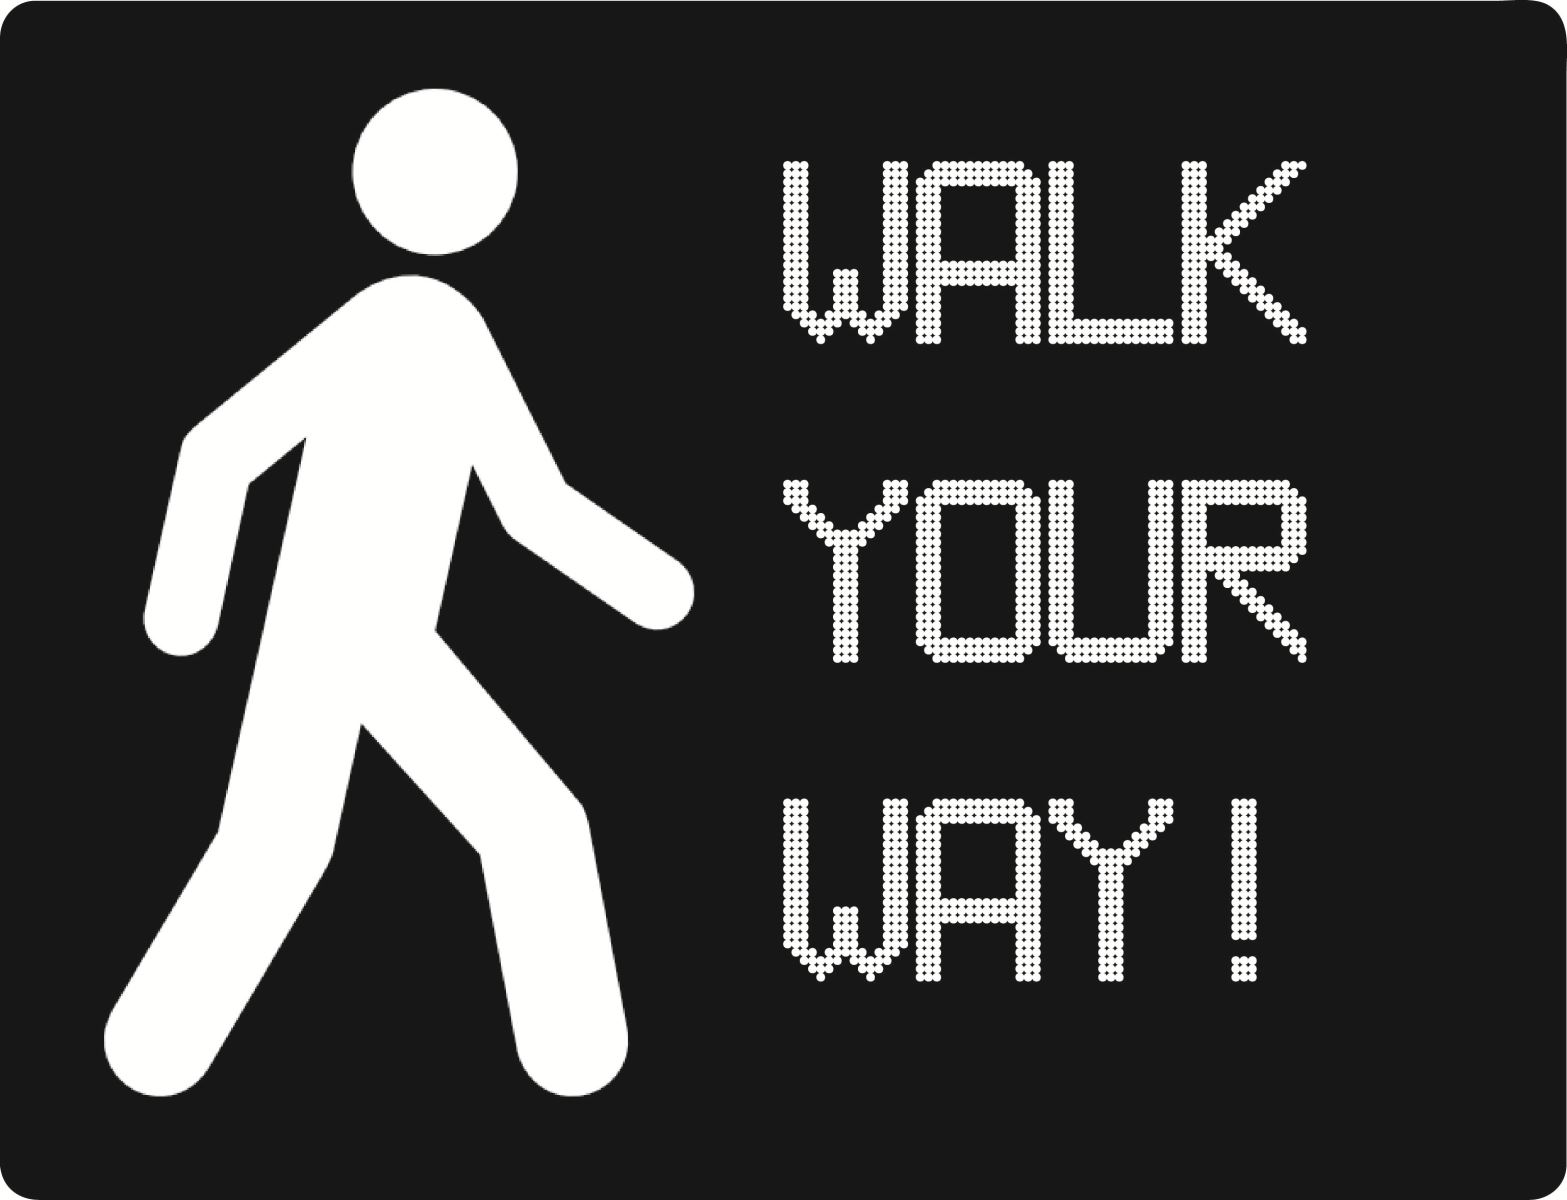 County Launches Walk Your Way High School Pedestrian Safety Program